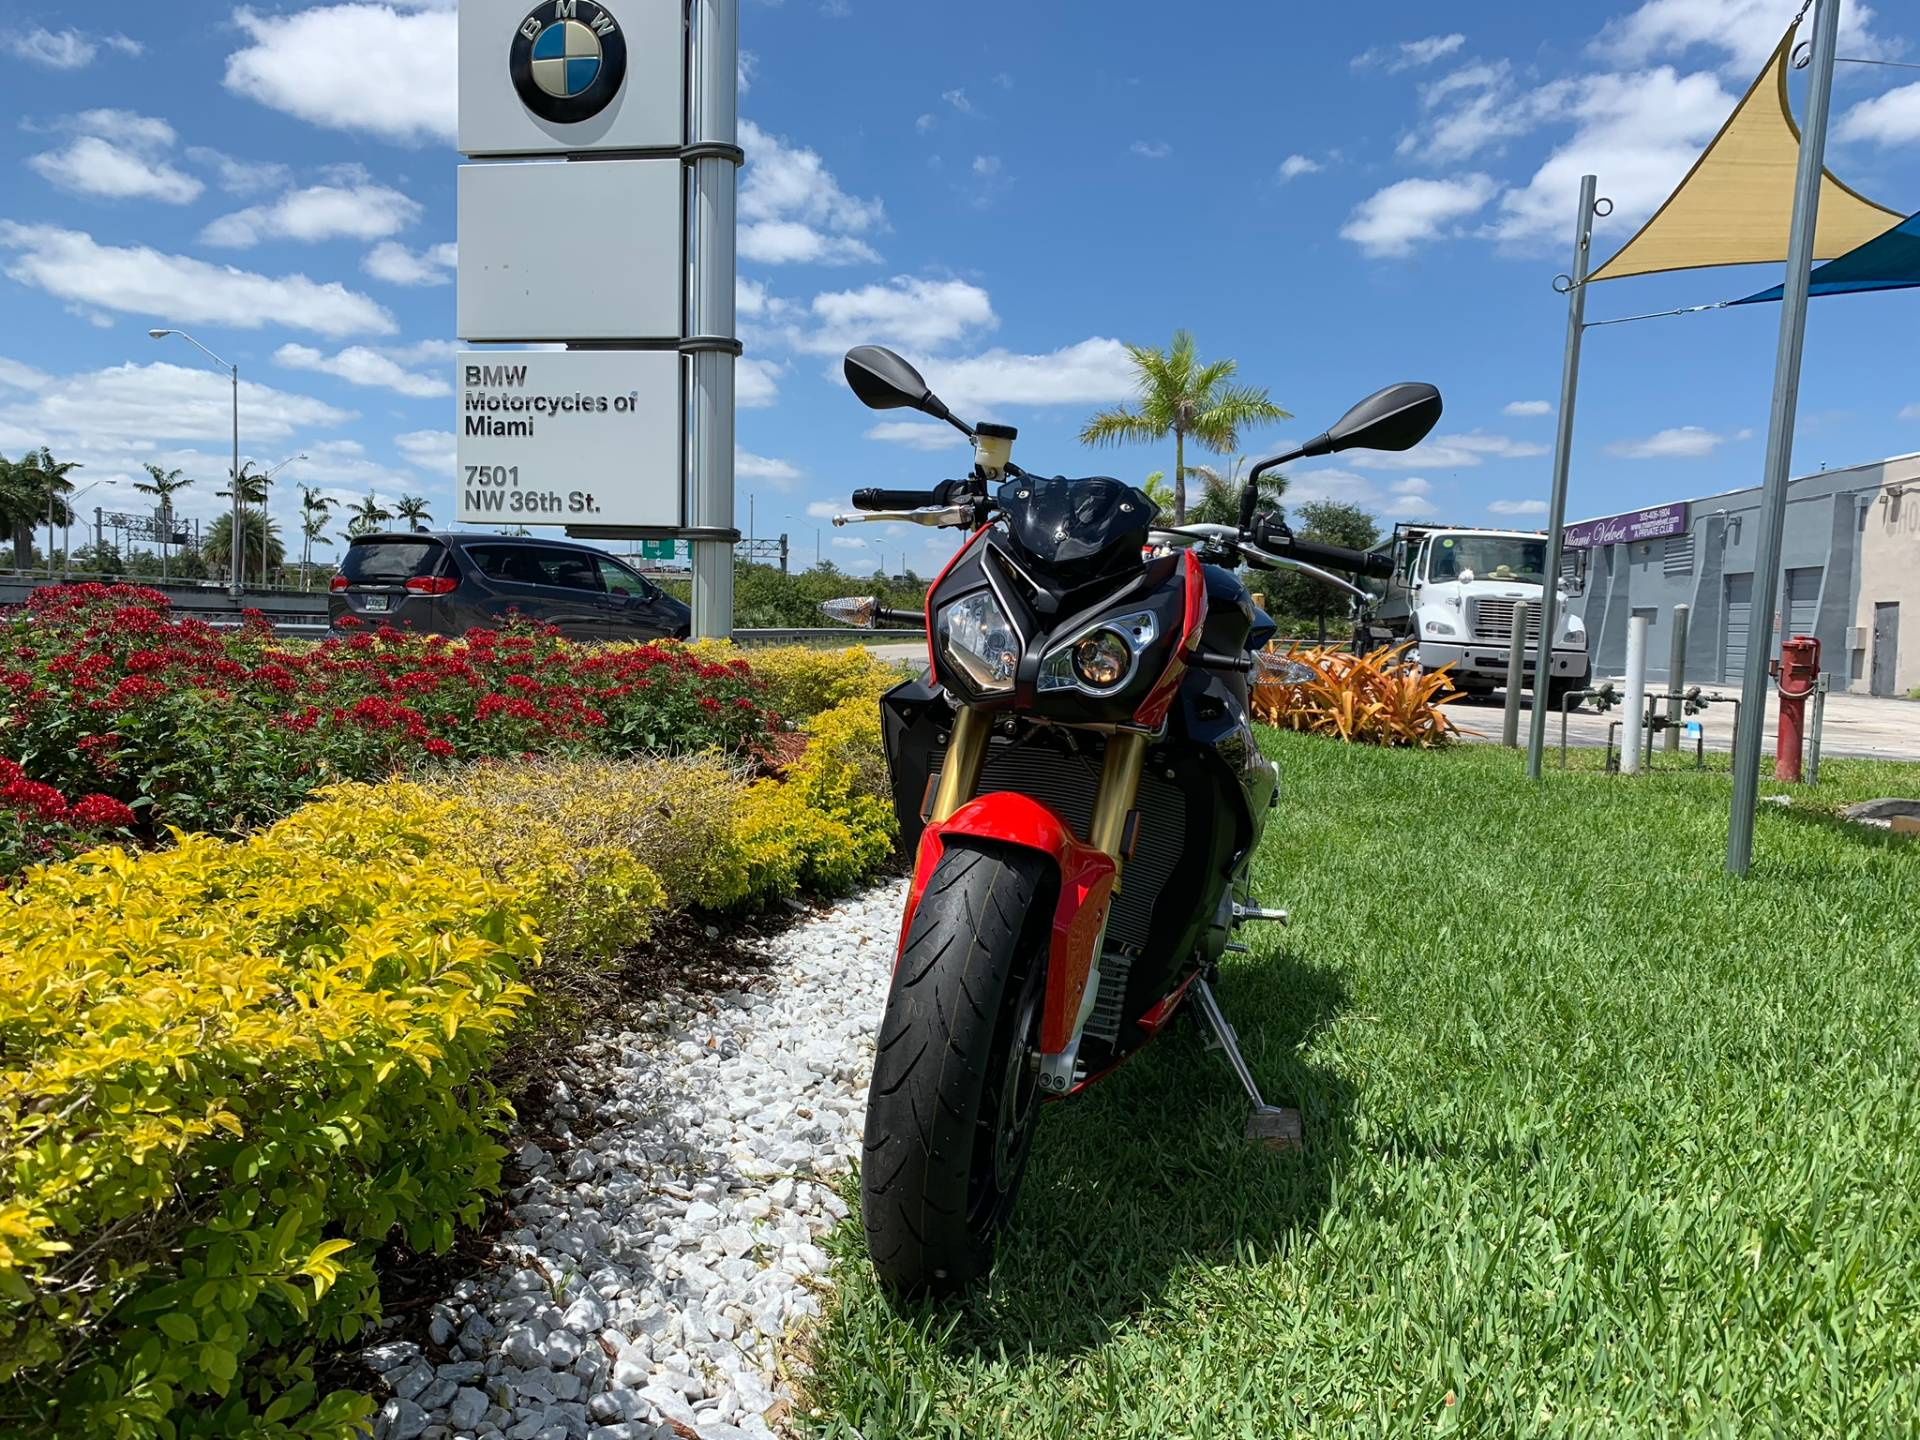 New 2019 BMW S 1000 R for sale, BMW S 1000R for sale, BMW Motorcycle S1000R, new BMW R, Sport, roadster, naked. BMW Motorcycles of Miami, Motorcycles of Miami, Motorcycles Miami, New Motorcycles, Used Motorcycles, pre-owned. #BMWMotorcyclesOfMiami #MotorcyclesOfMiami #MotorcyclesMiami - Photo 3